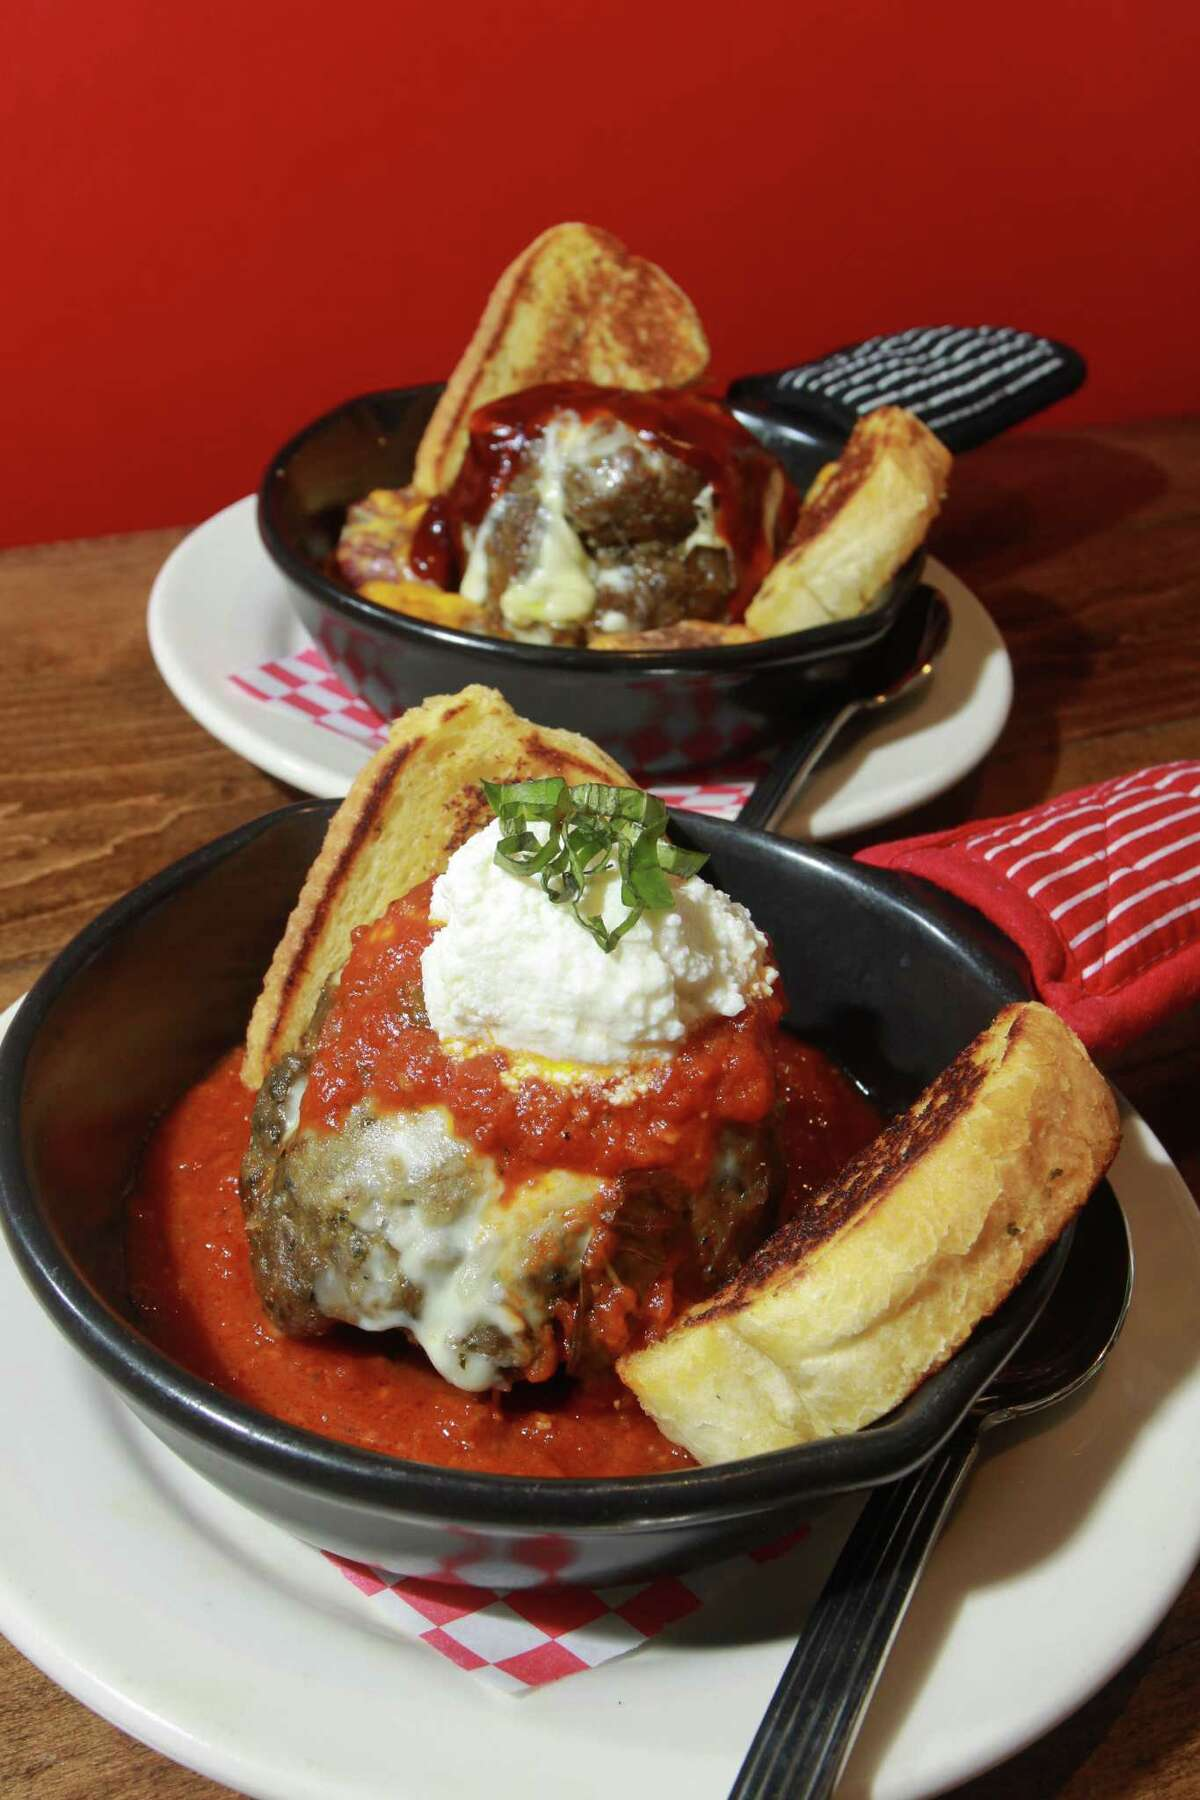 (For the Chronicle/Gary Fountain, March 13, 2014) The City Oven Meatball, foreground, with a Texas Chipotle Meatball in the background, at City Oven.